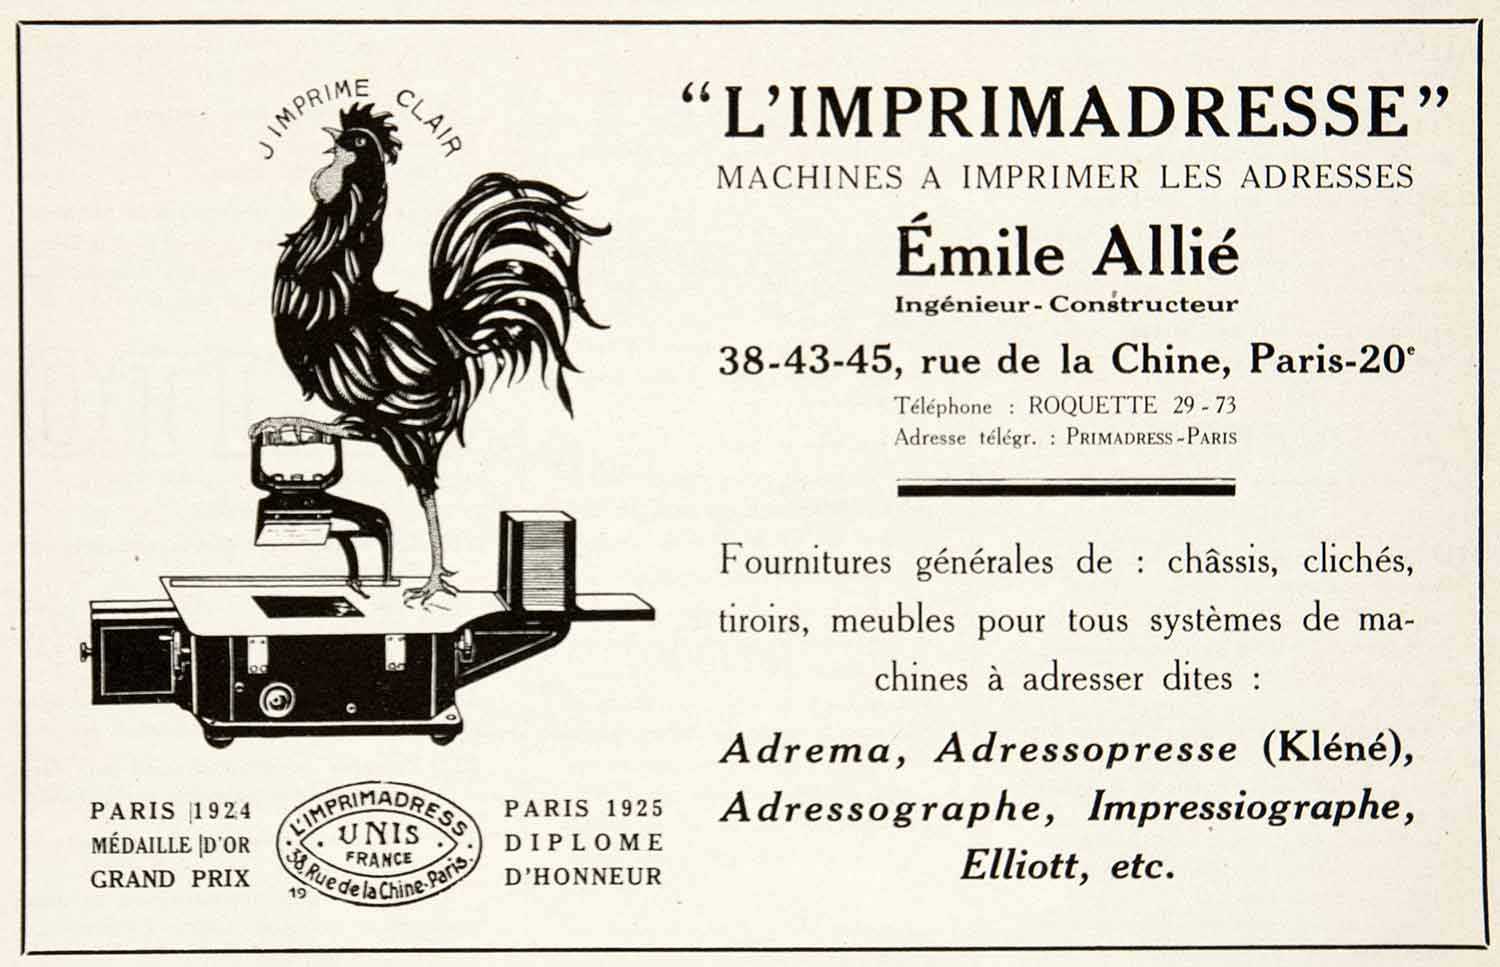 1925 Ad Imprimadresse Emile Allie Furniture Unis France 38 Rue Chine Adrema VEN4